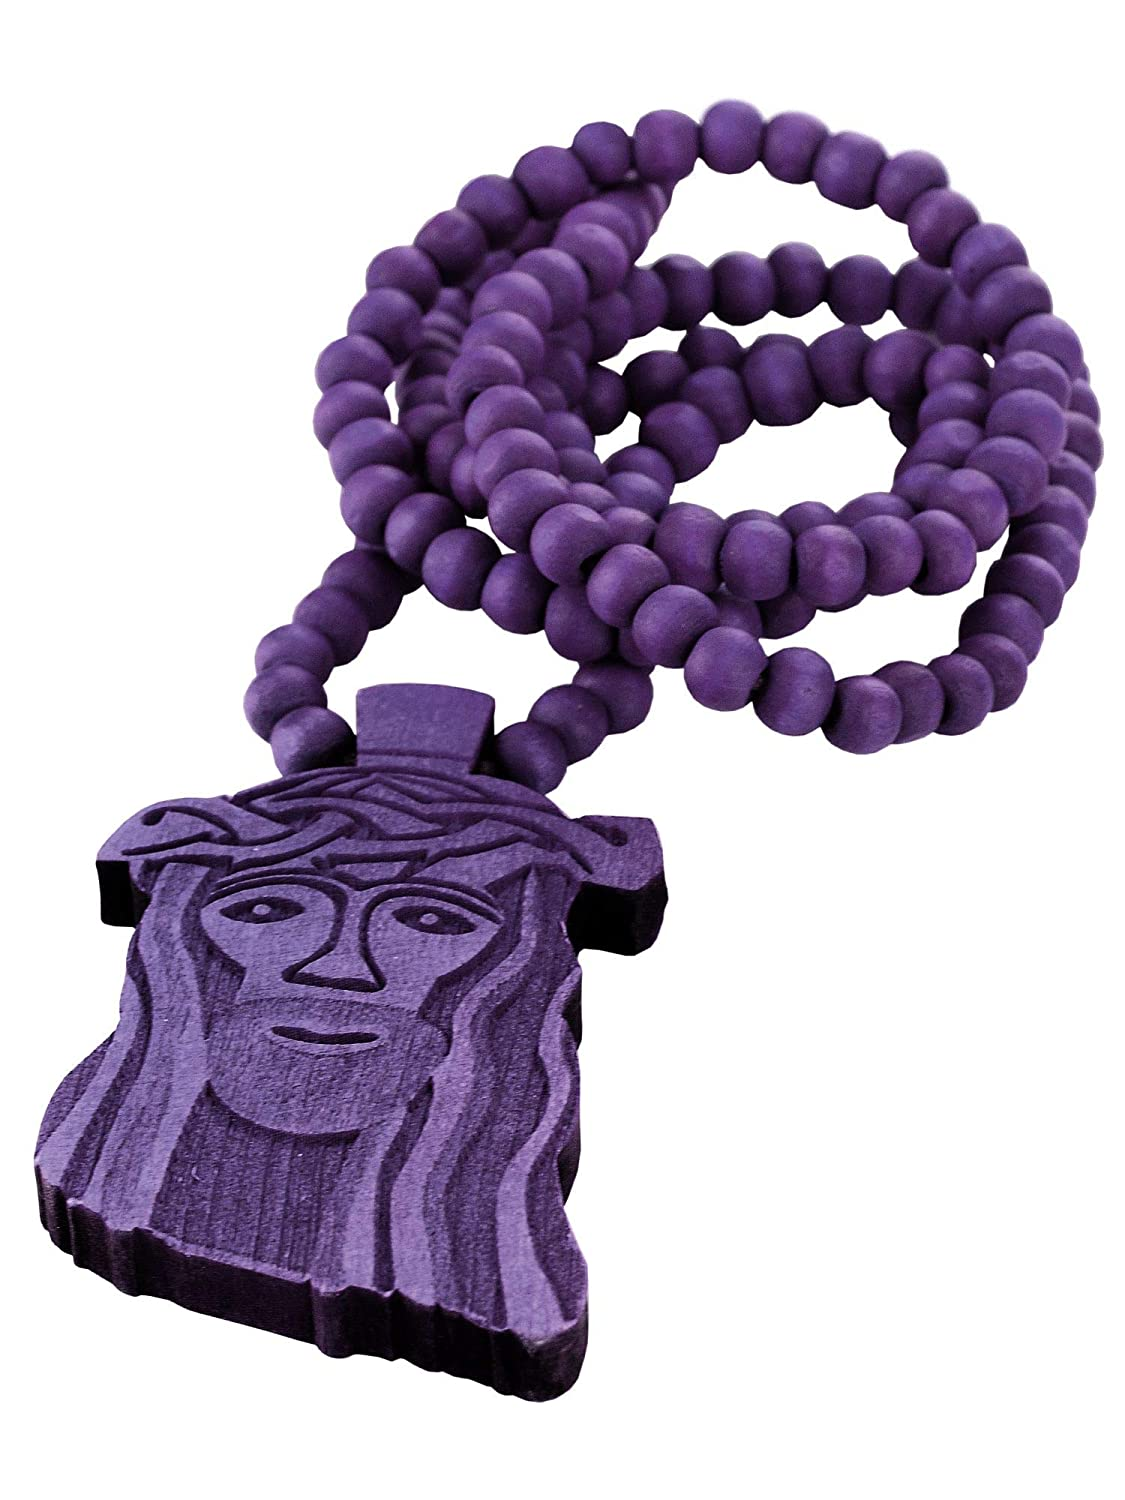 NYFASHION101 Smiling Jesus Face Pendant with 8mm 36 Wooden Bead Necklace